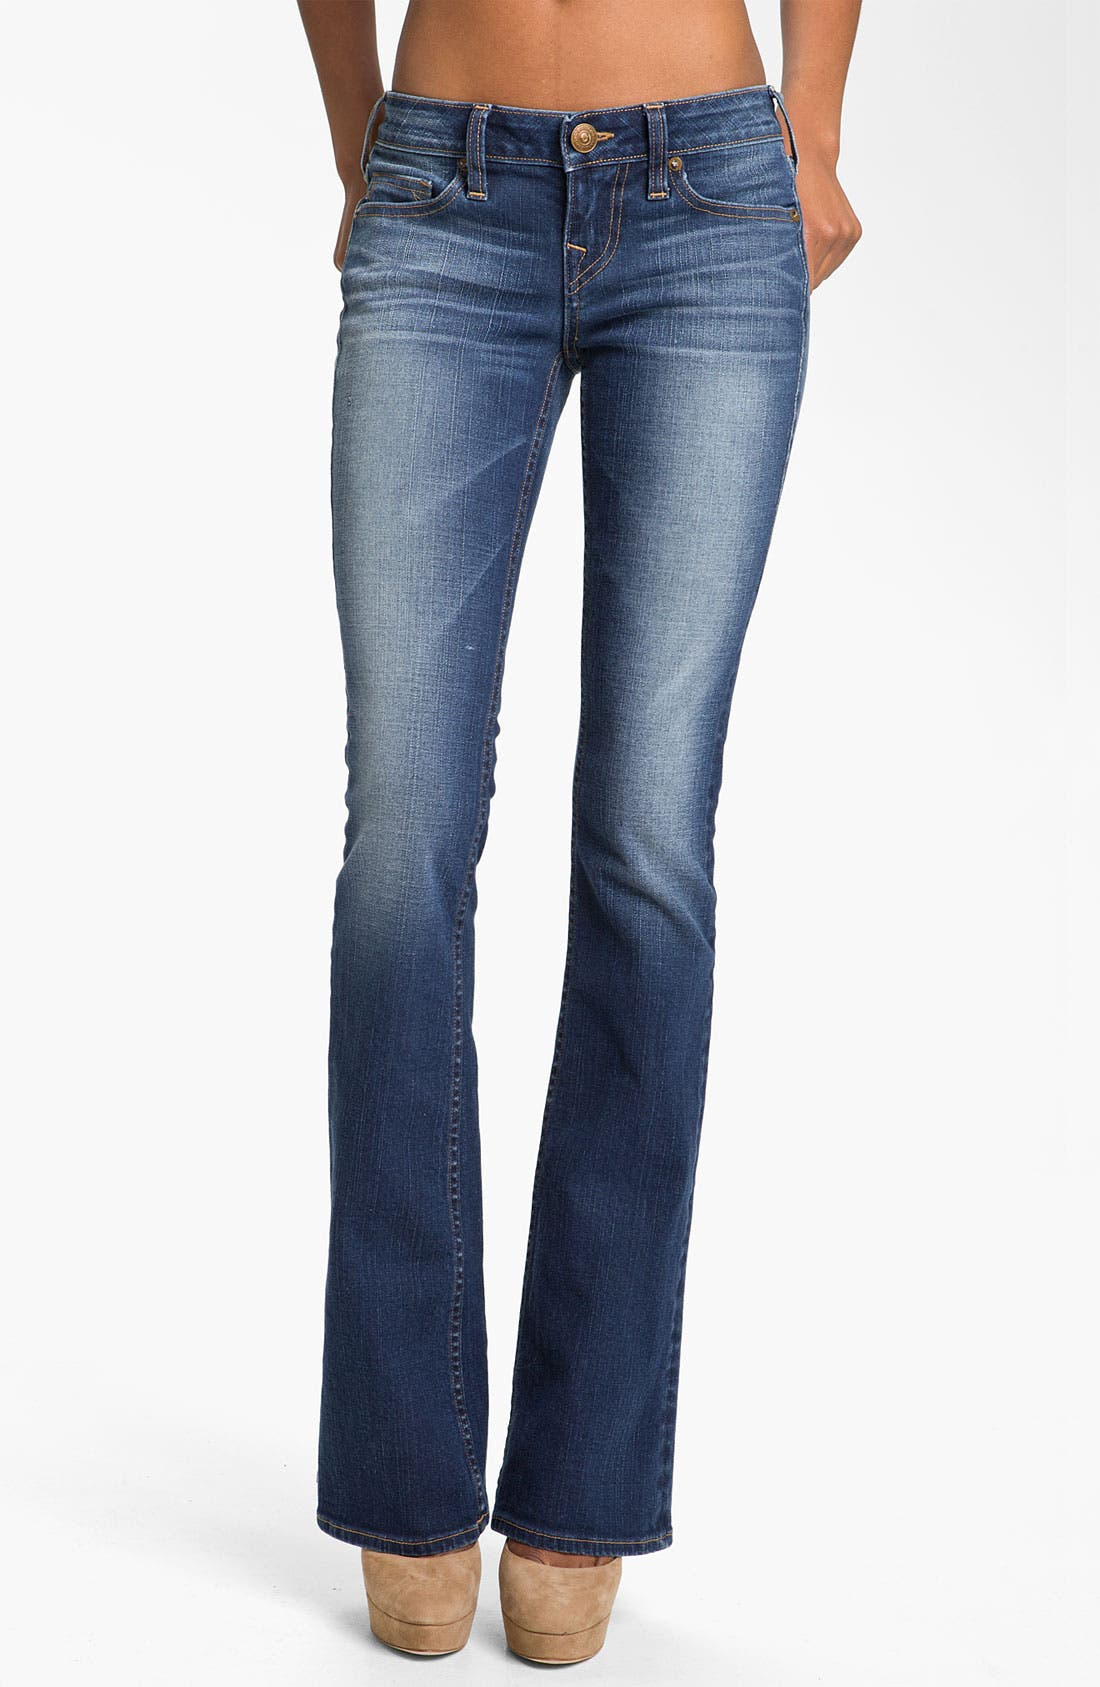 Main Image - True Religion Brand Jeans 'Bobby' Bootcut Jeans (Del Mar Medium)